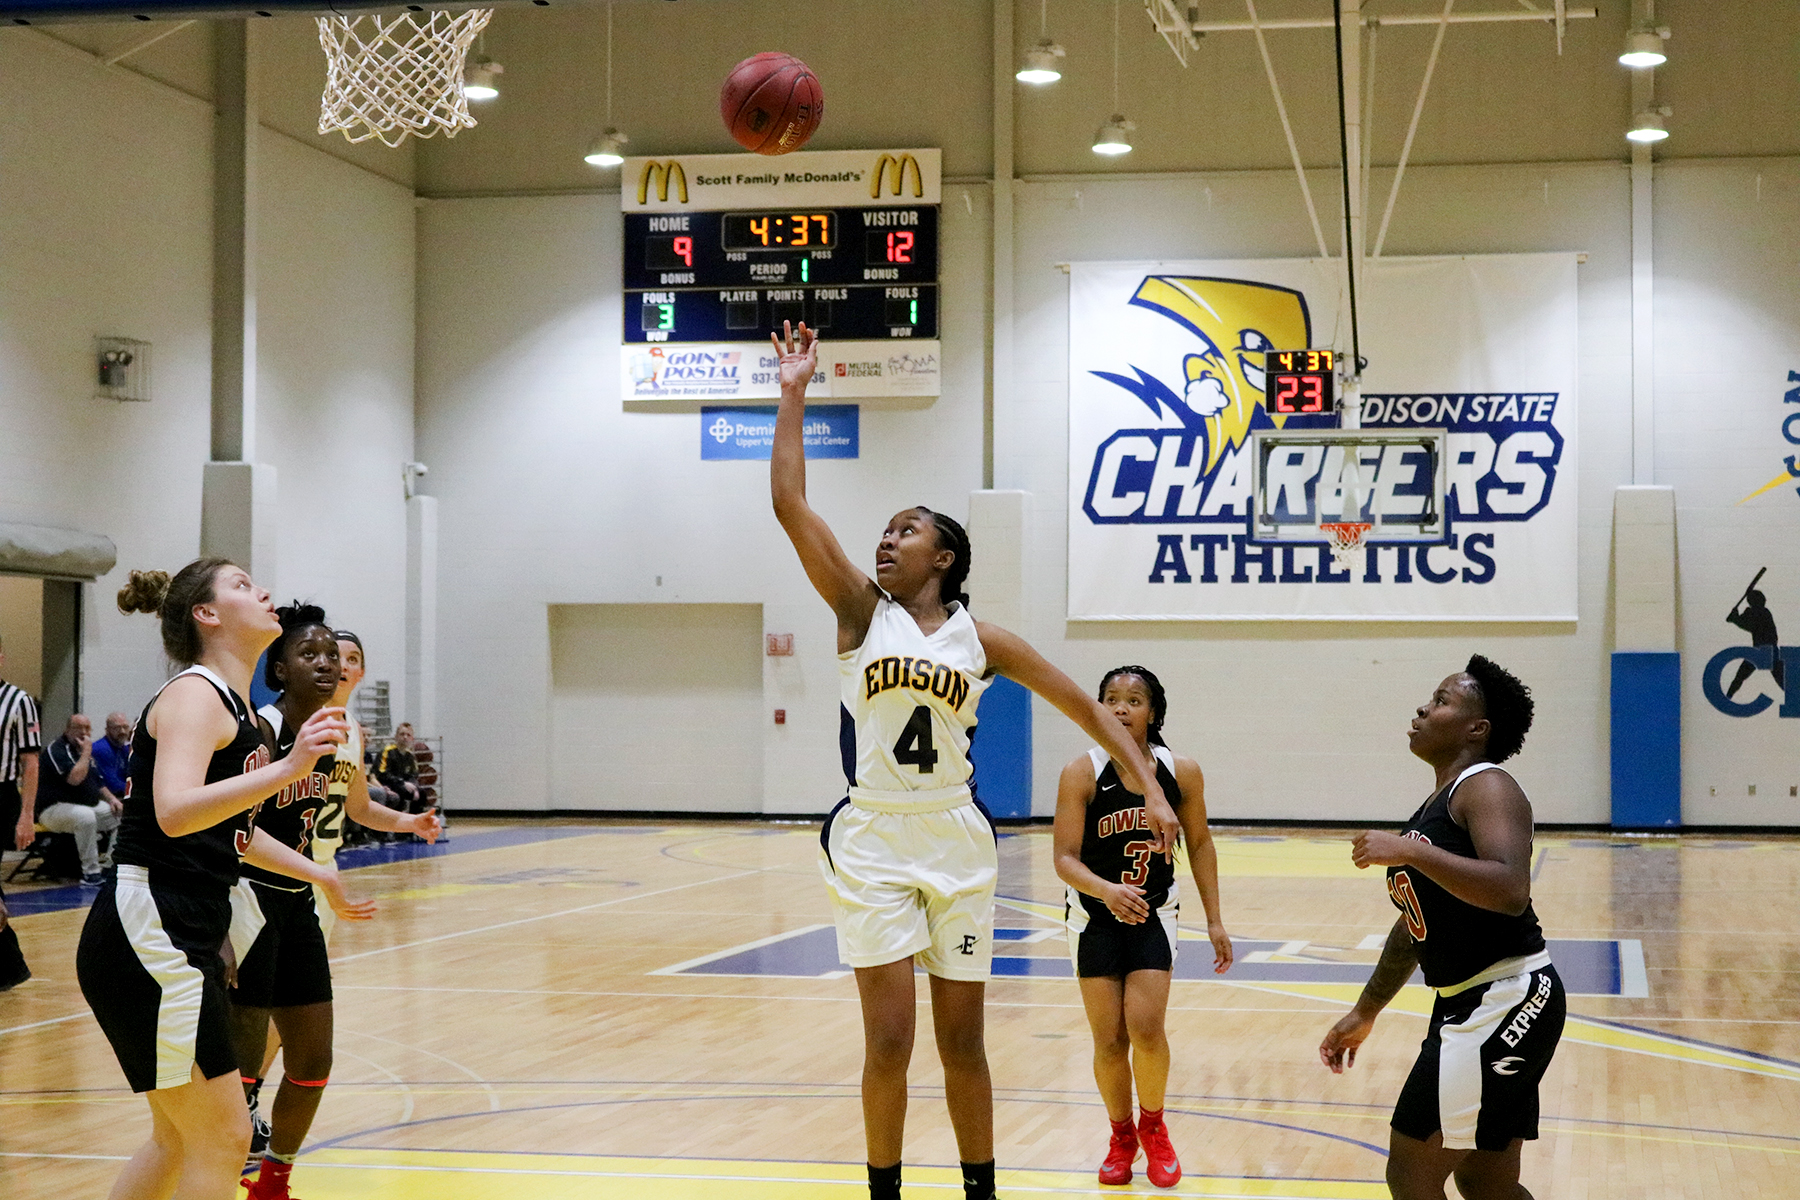 Lady Chargers Improve to 2-0 in OCCAC